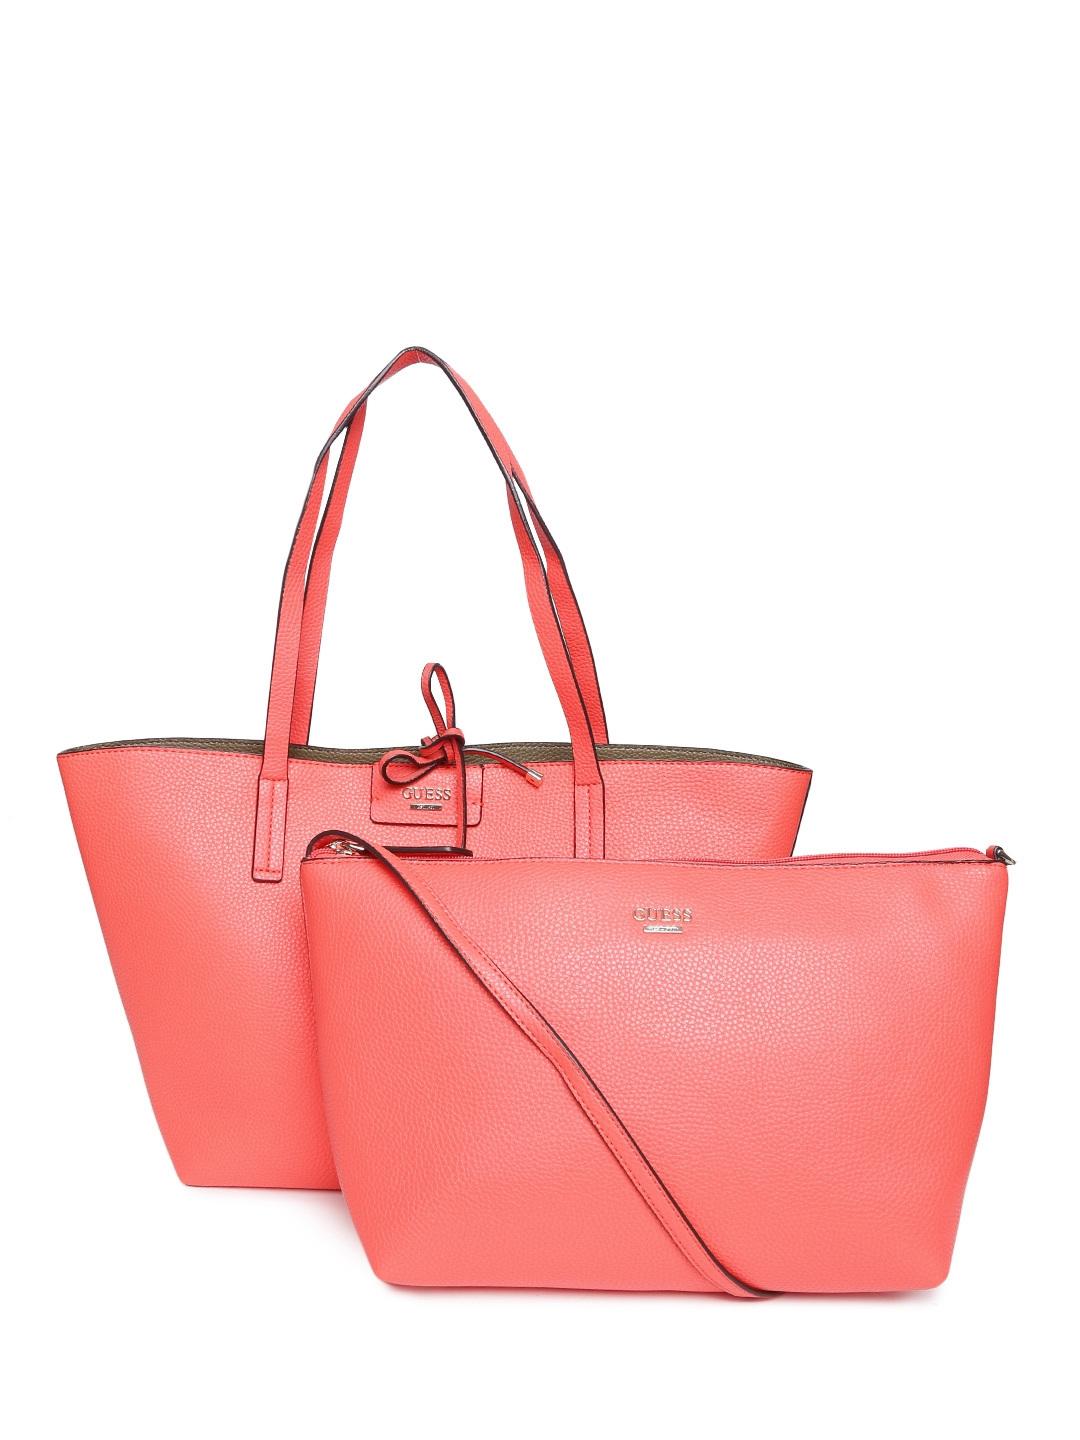 6afa51f13609 Buy GUESS Coral Red   Olive Green Textured Reversible Tote Bag With Sling  Bag - Handbags for Women 1468008